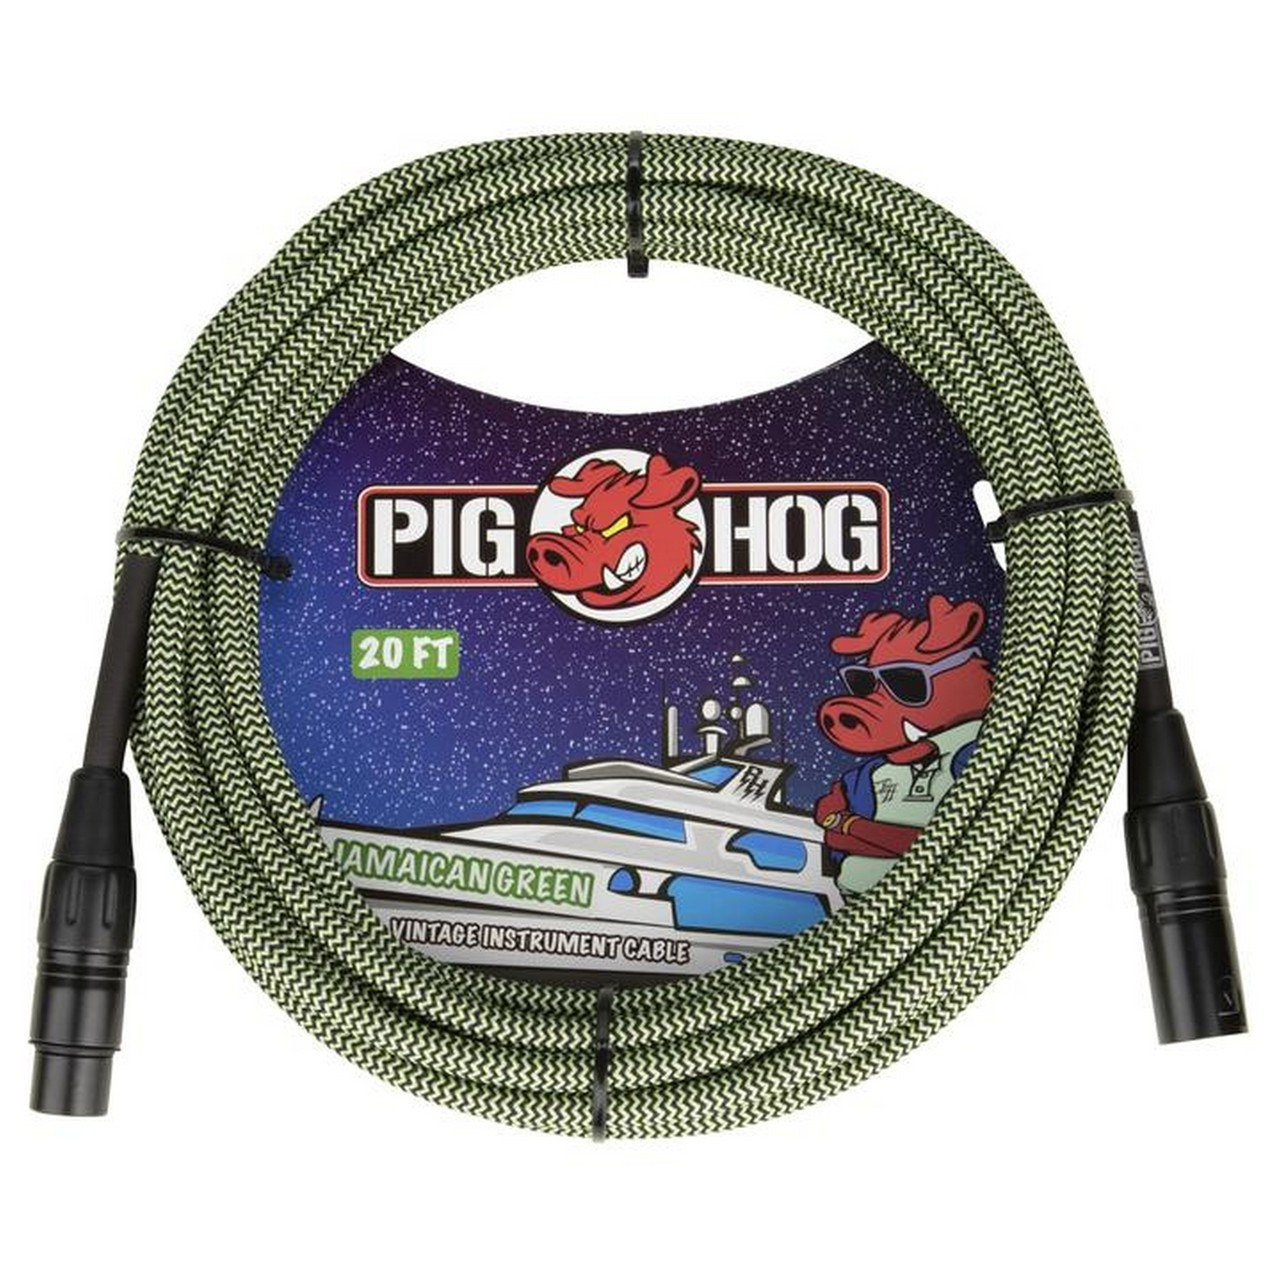 PIG HOG PHM20JGR 20FT  VINTAGE SERIES WOVEN MICROPHONE CABLE, JAMAICAN GREEN